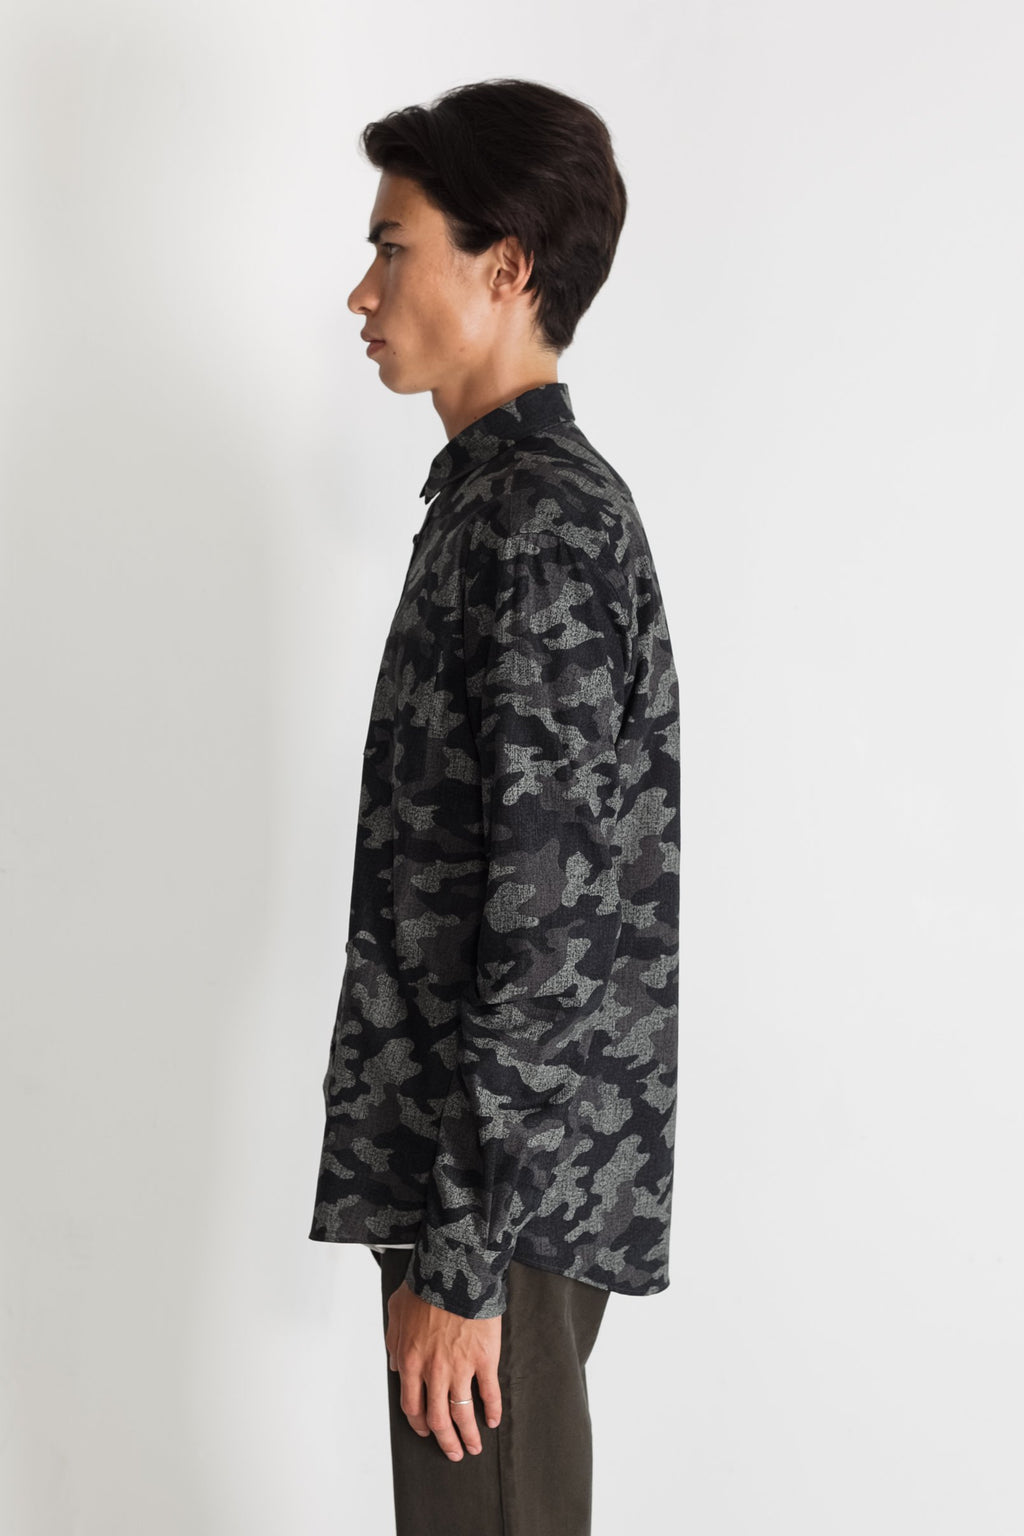 Japanese Camouflage Print in Grey 01